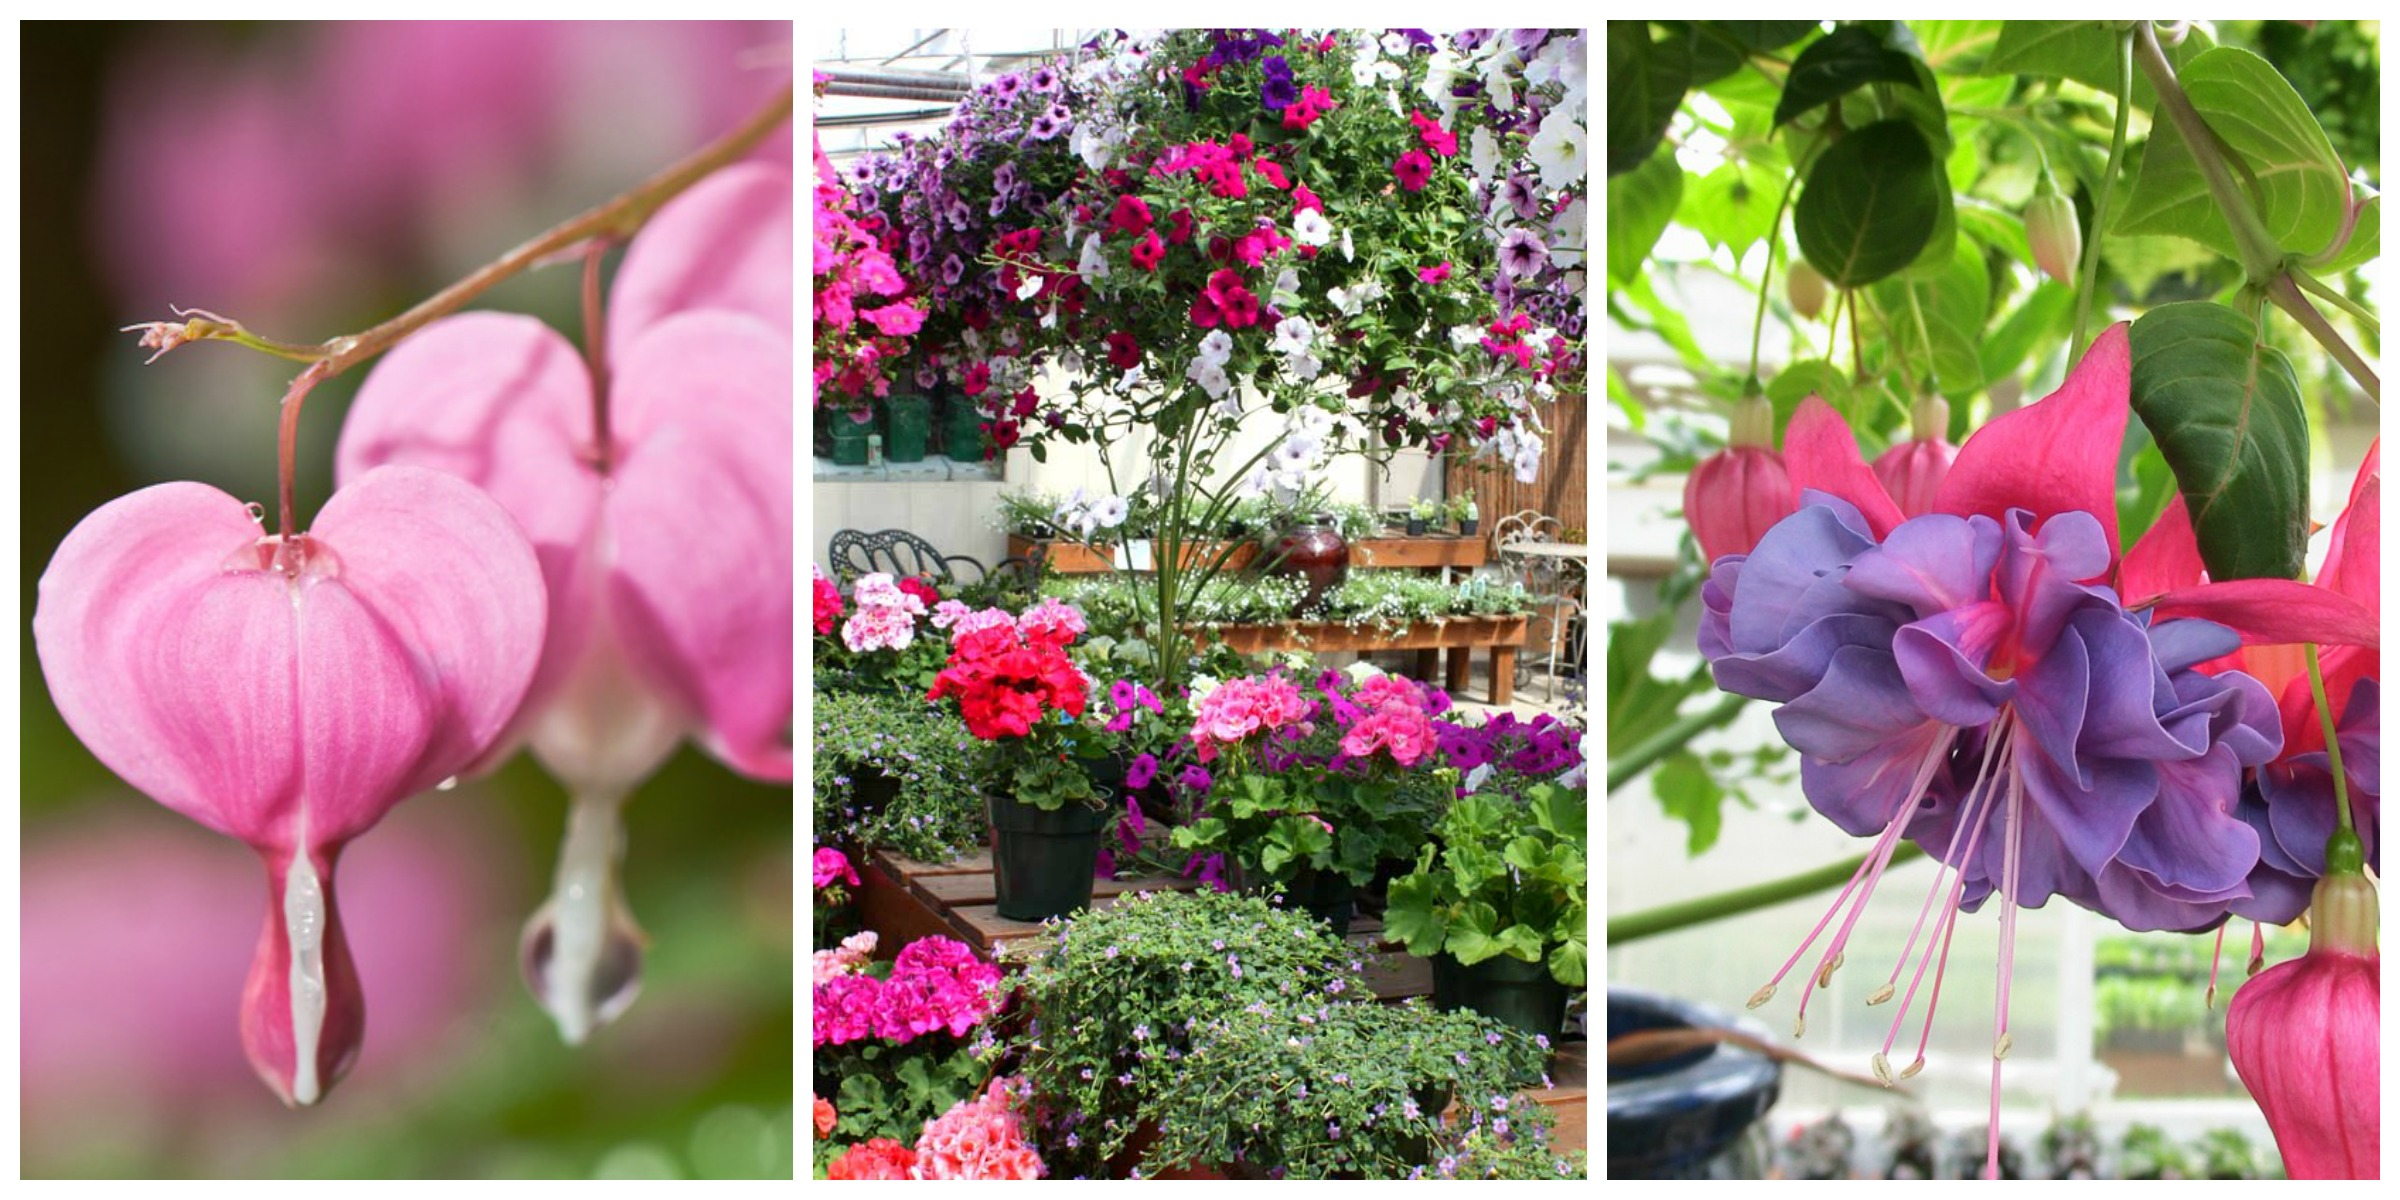 Mother's Day flowers: bleeding heart, hanging baskets, fuschias